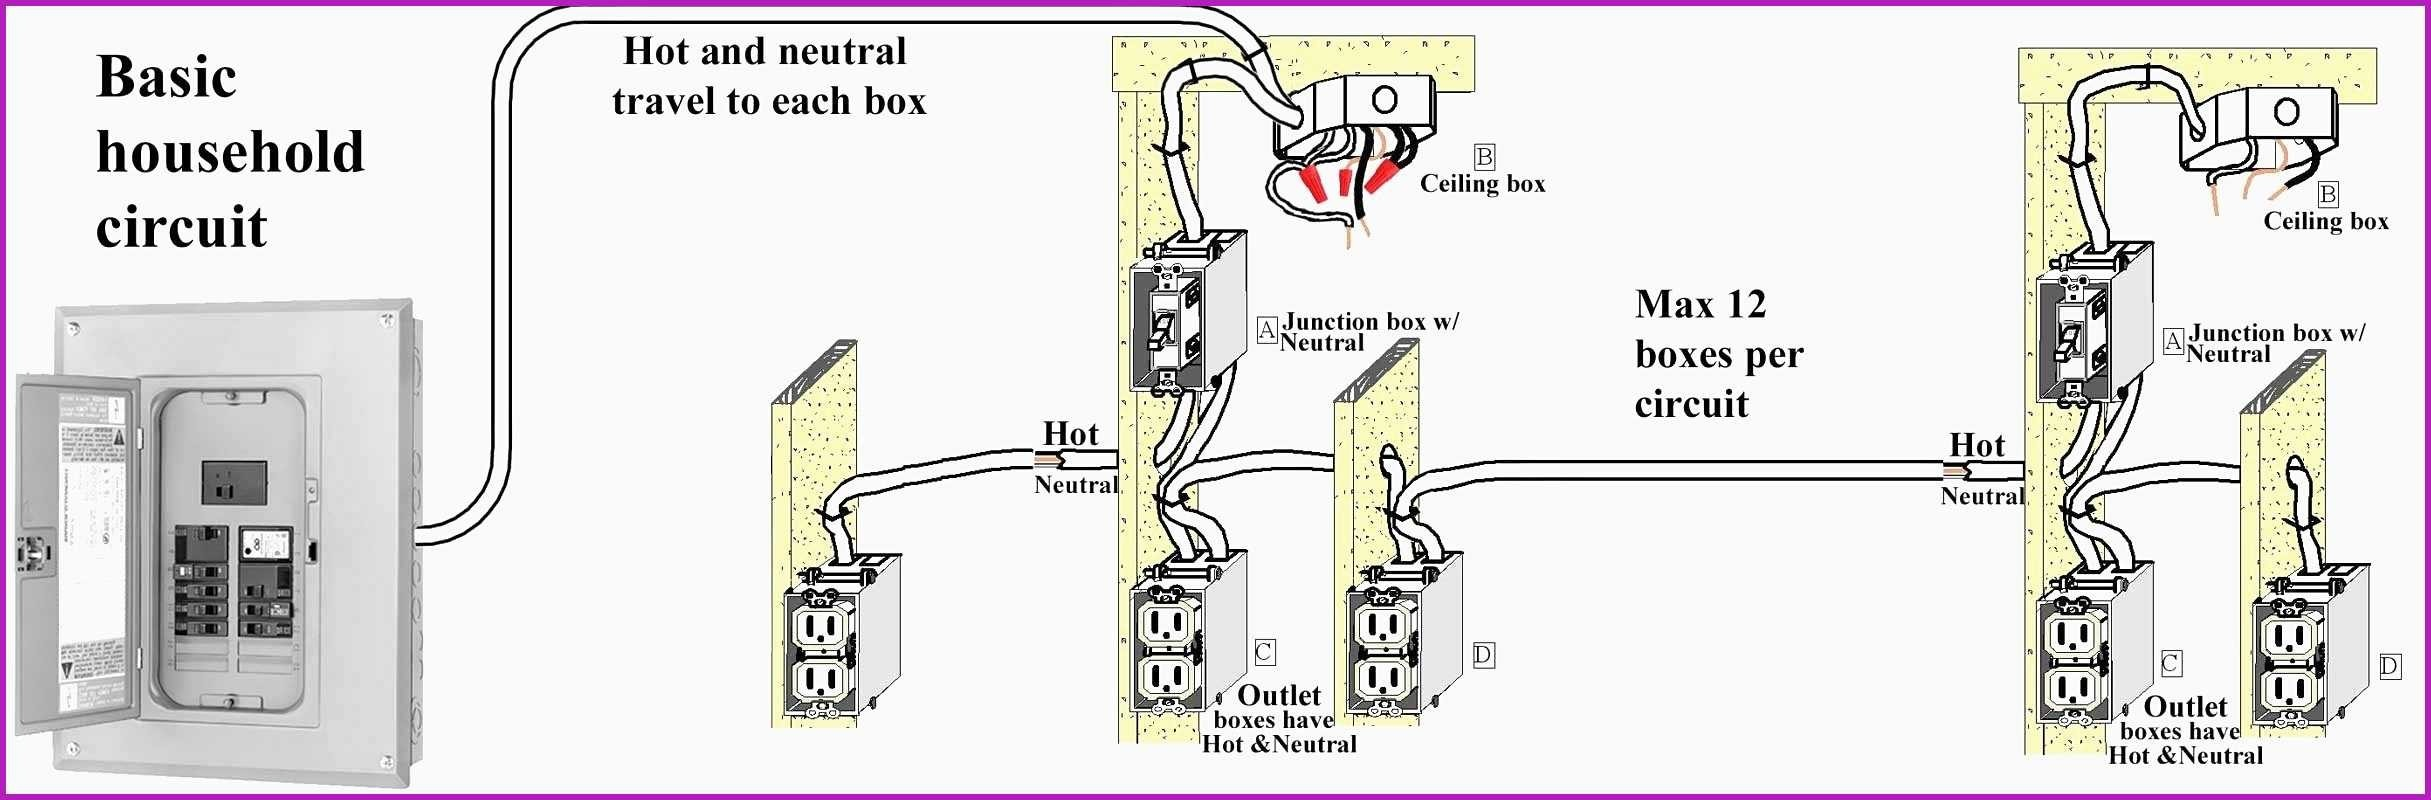 Fine House Wiring Diagrams New Wiring A Small House Wiring Diagrams Wiring Cloud Inklaidewilluminateatxorg